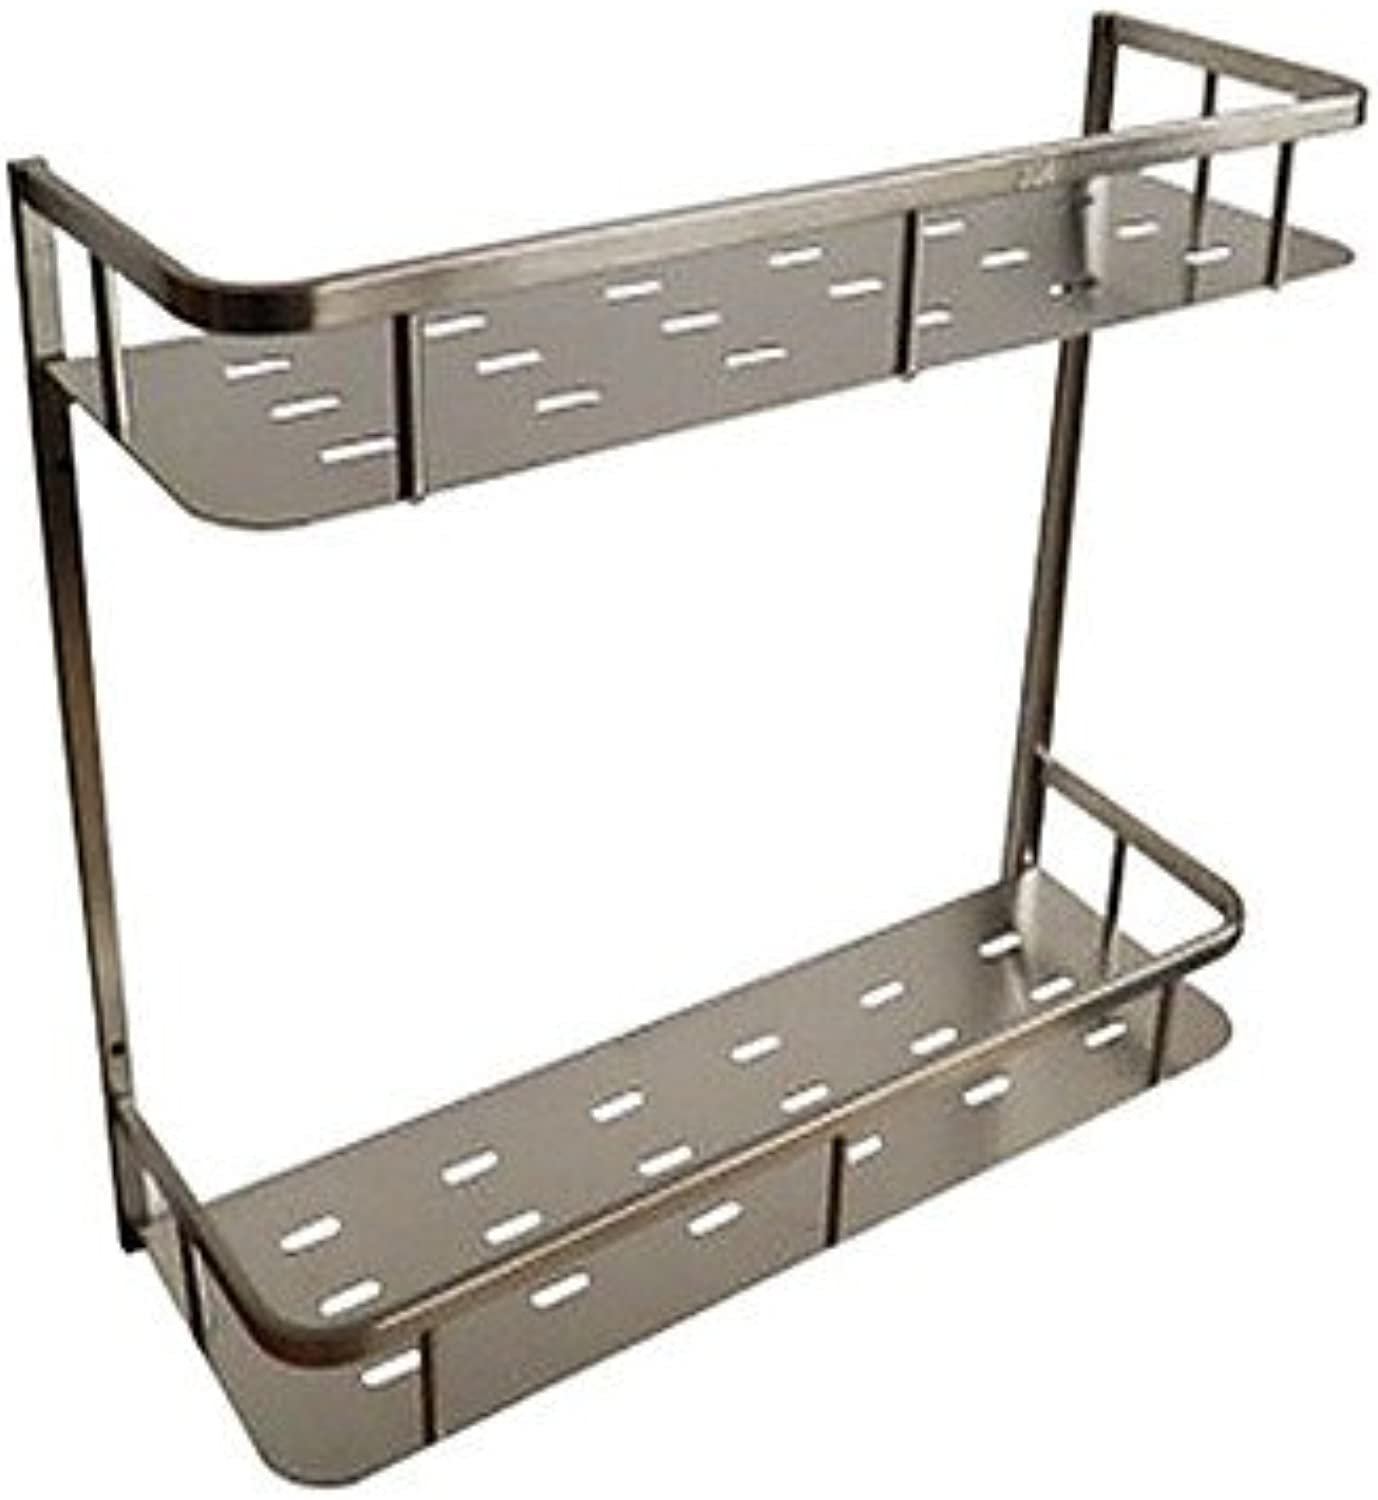 &Huahua The bathroom brushed stainless steel double wall rack